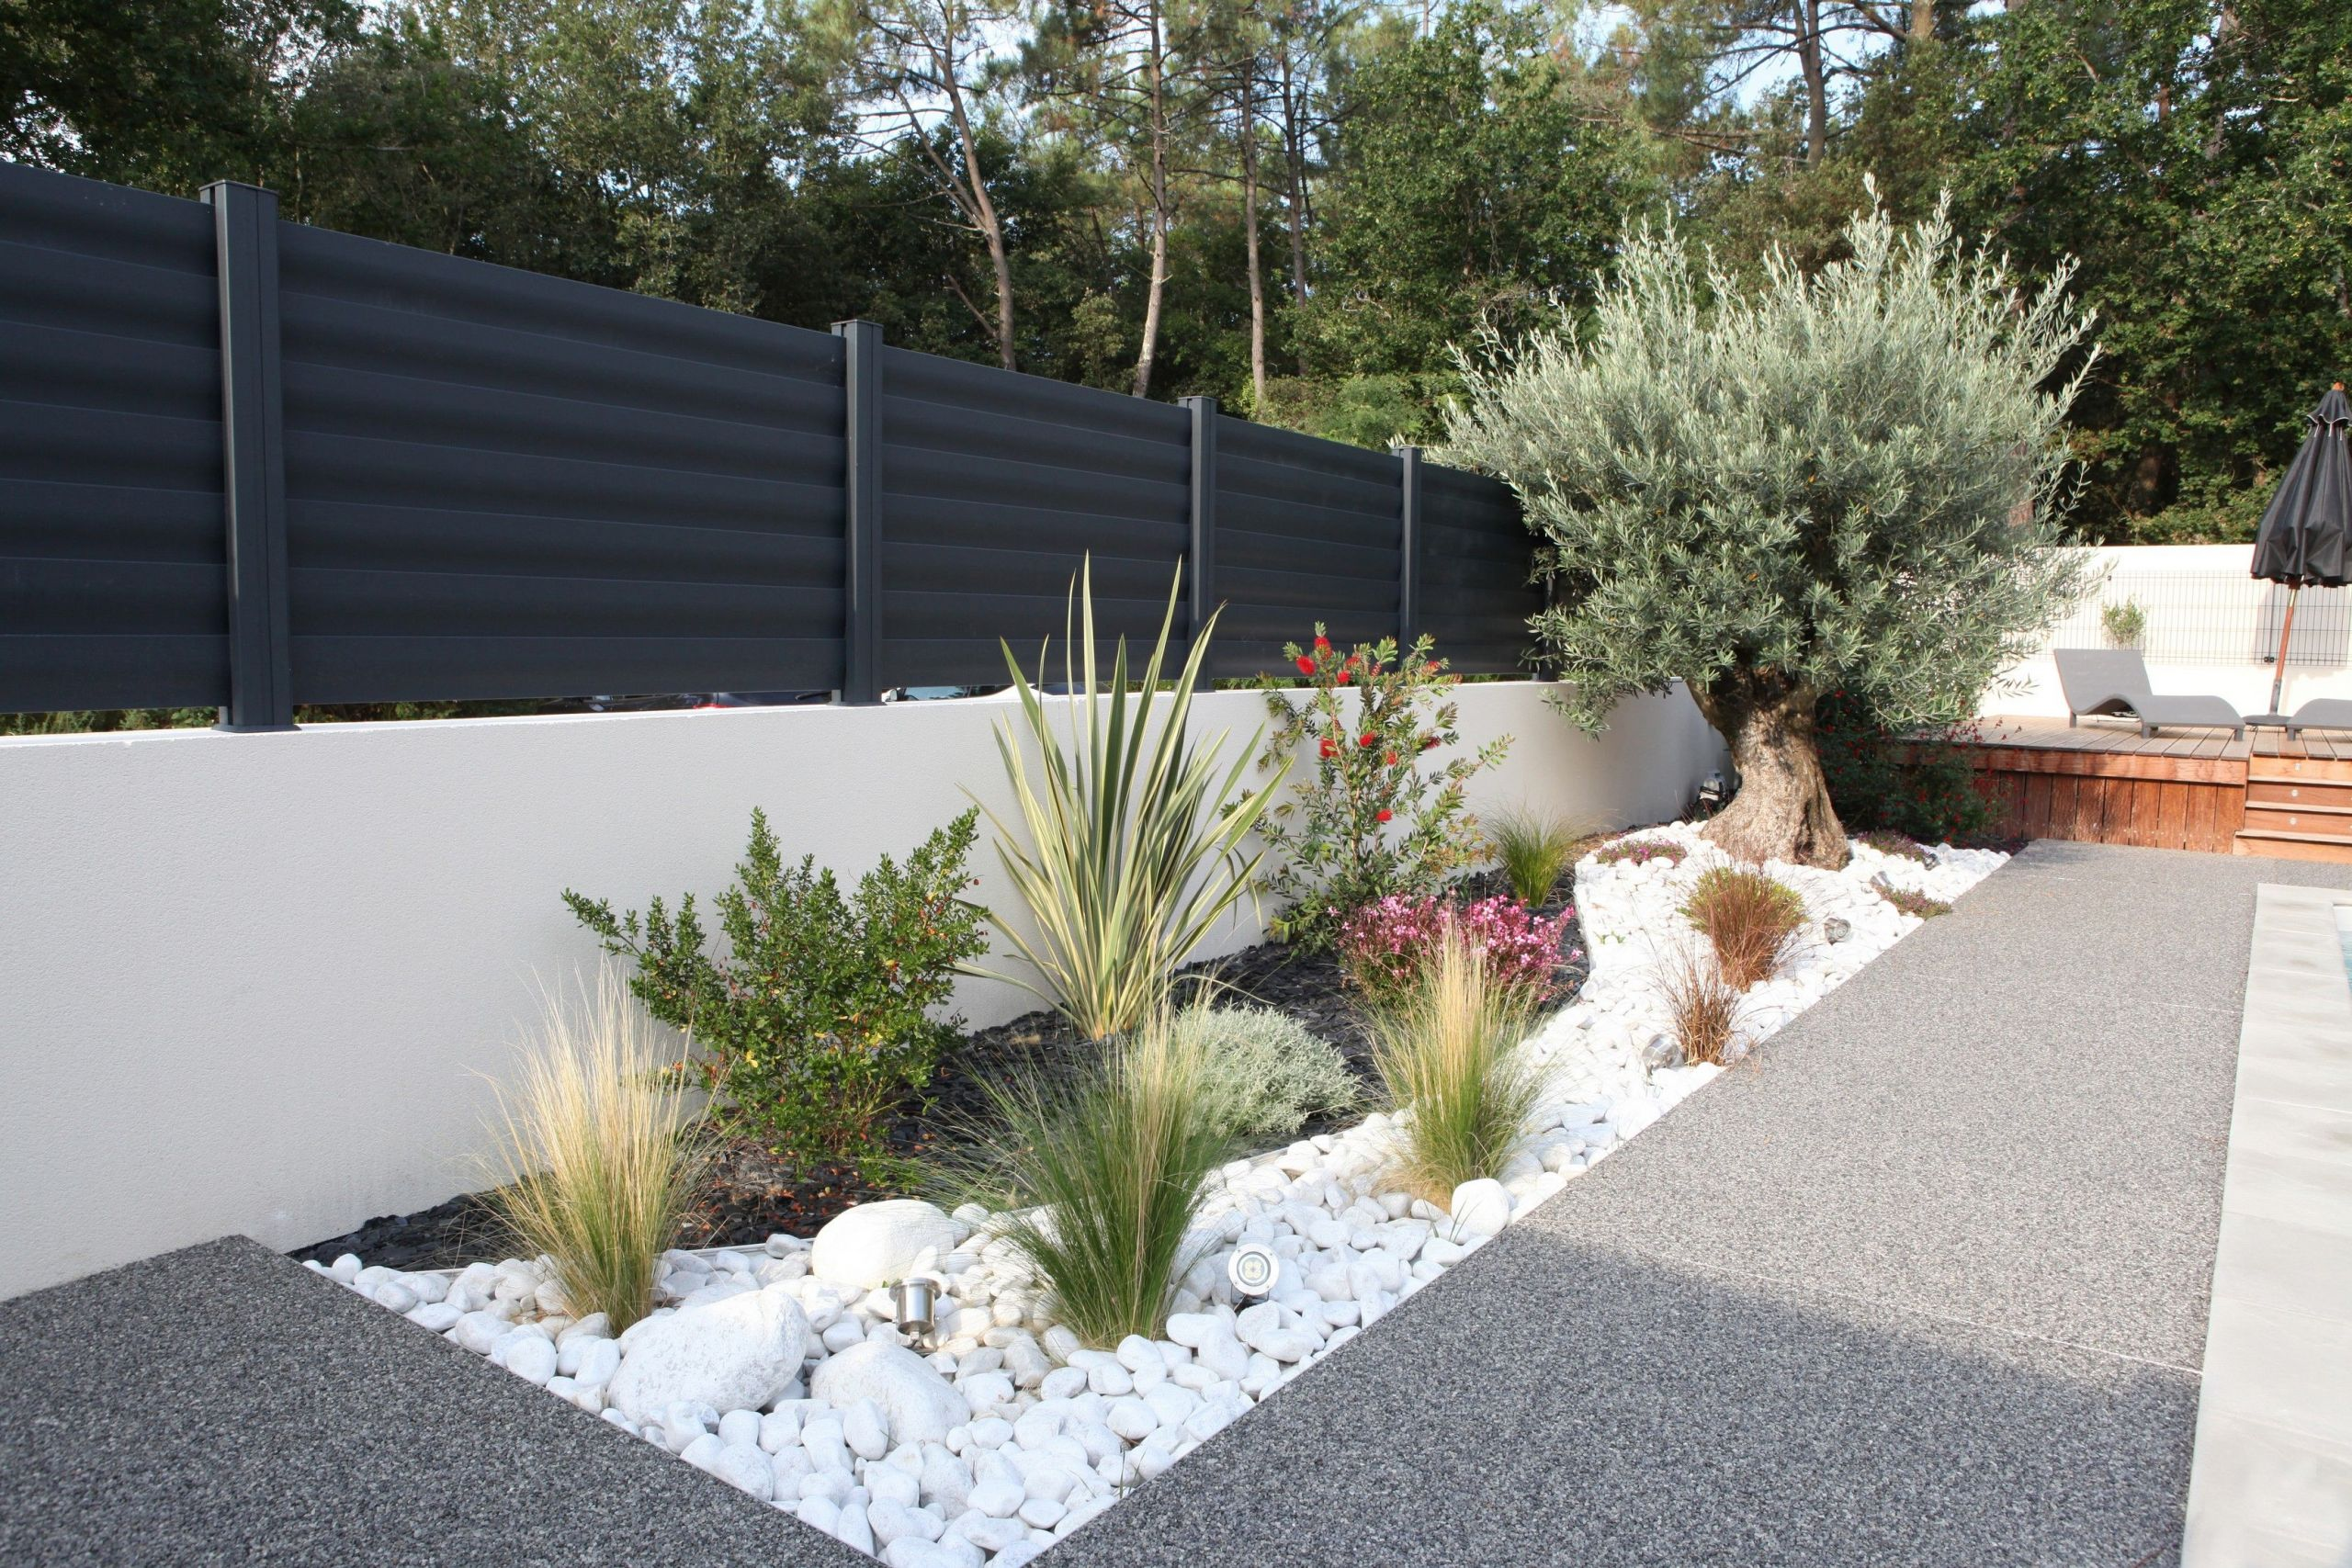 jardin paysager exemple clotures aluminium modele brise vue menuiserie cloturel of jardin paysager exemple scaled